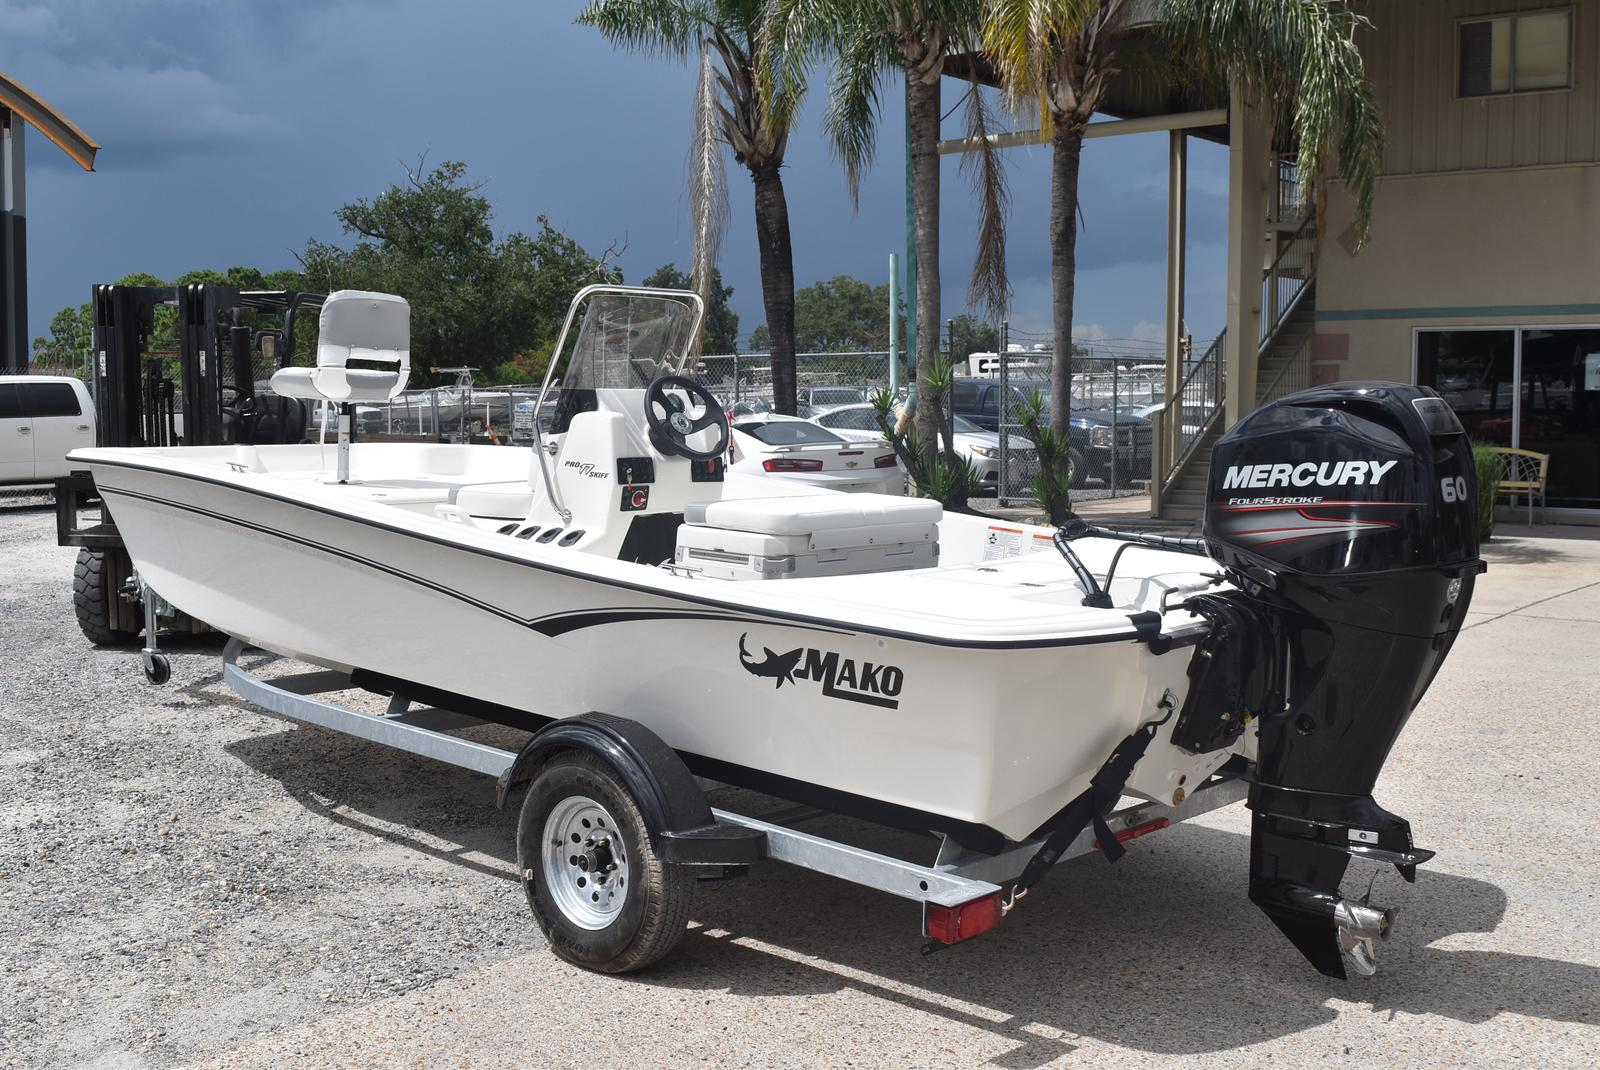 2020 Mako boat for sale, model of the boat is Pro Skiff 17, 75 ELPT & Image # 180 of 702